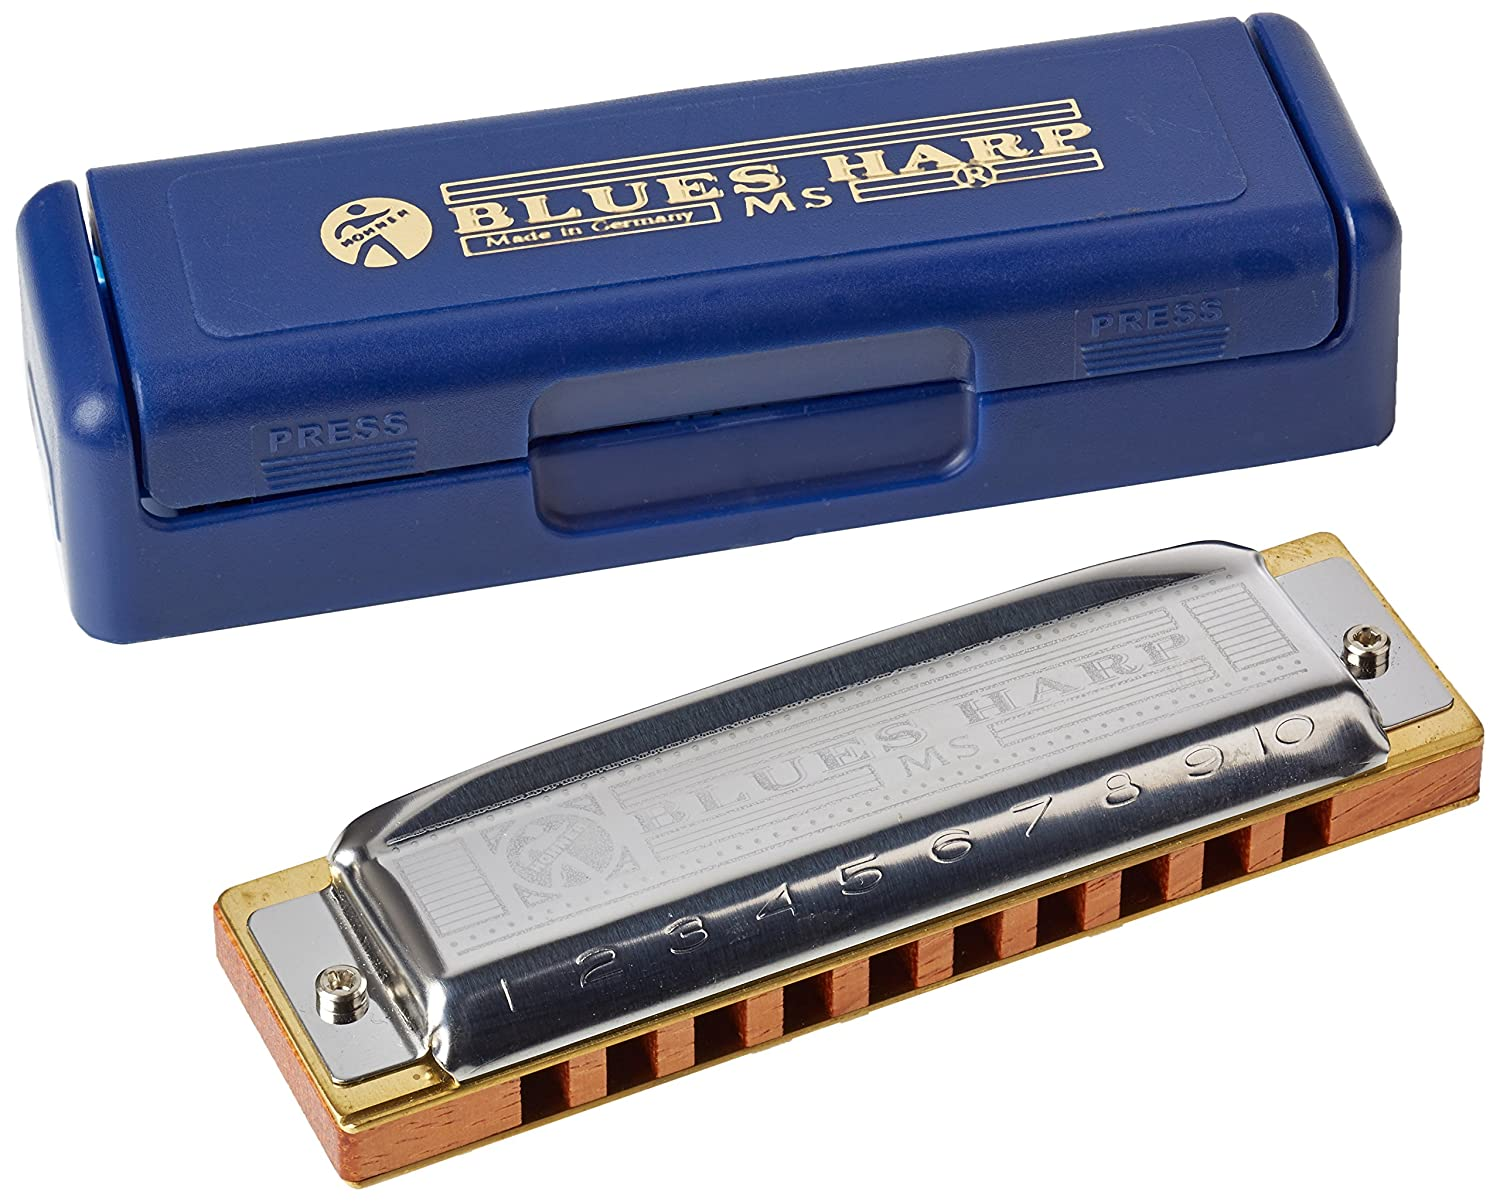 Hohner M533086 - Armónica en Sol Mayor (acero inoxidable), color azul 532BX-G#